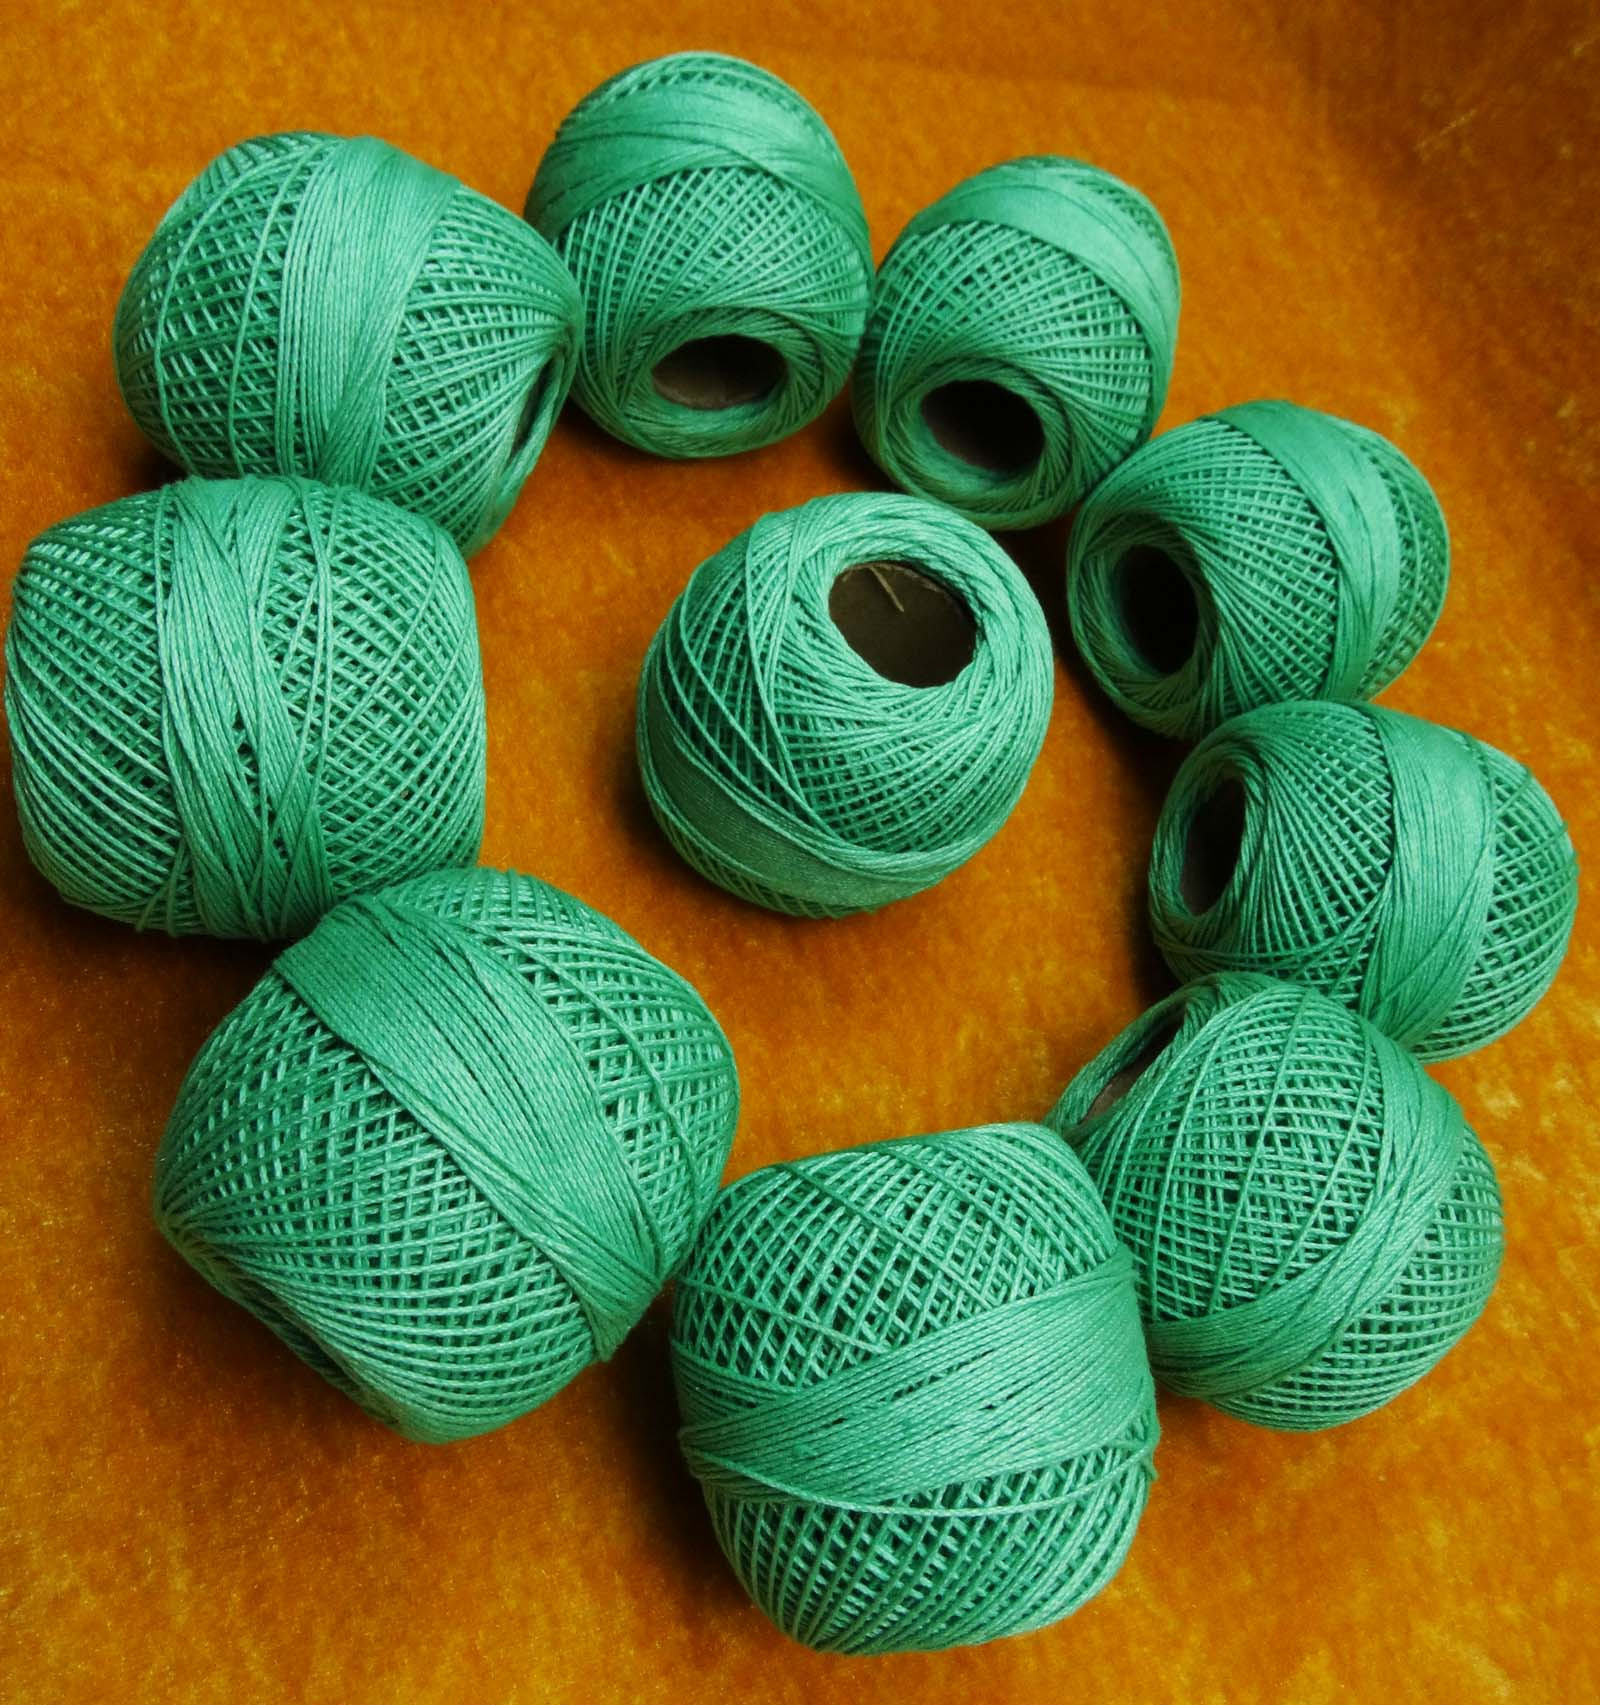 10 Pcs Yellow Mercer Cotton Crochet Thread Yarn Tatting